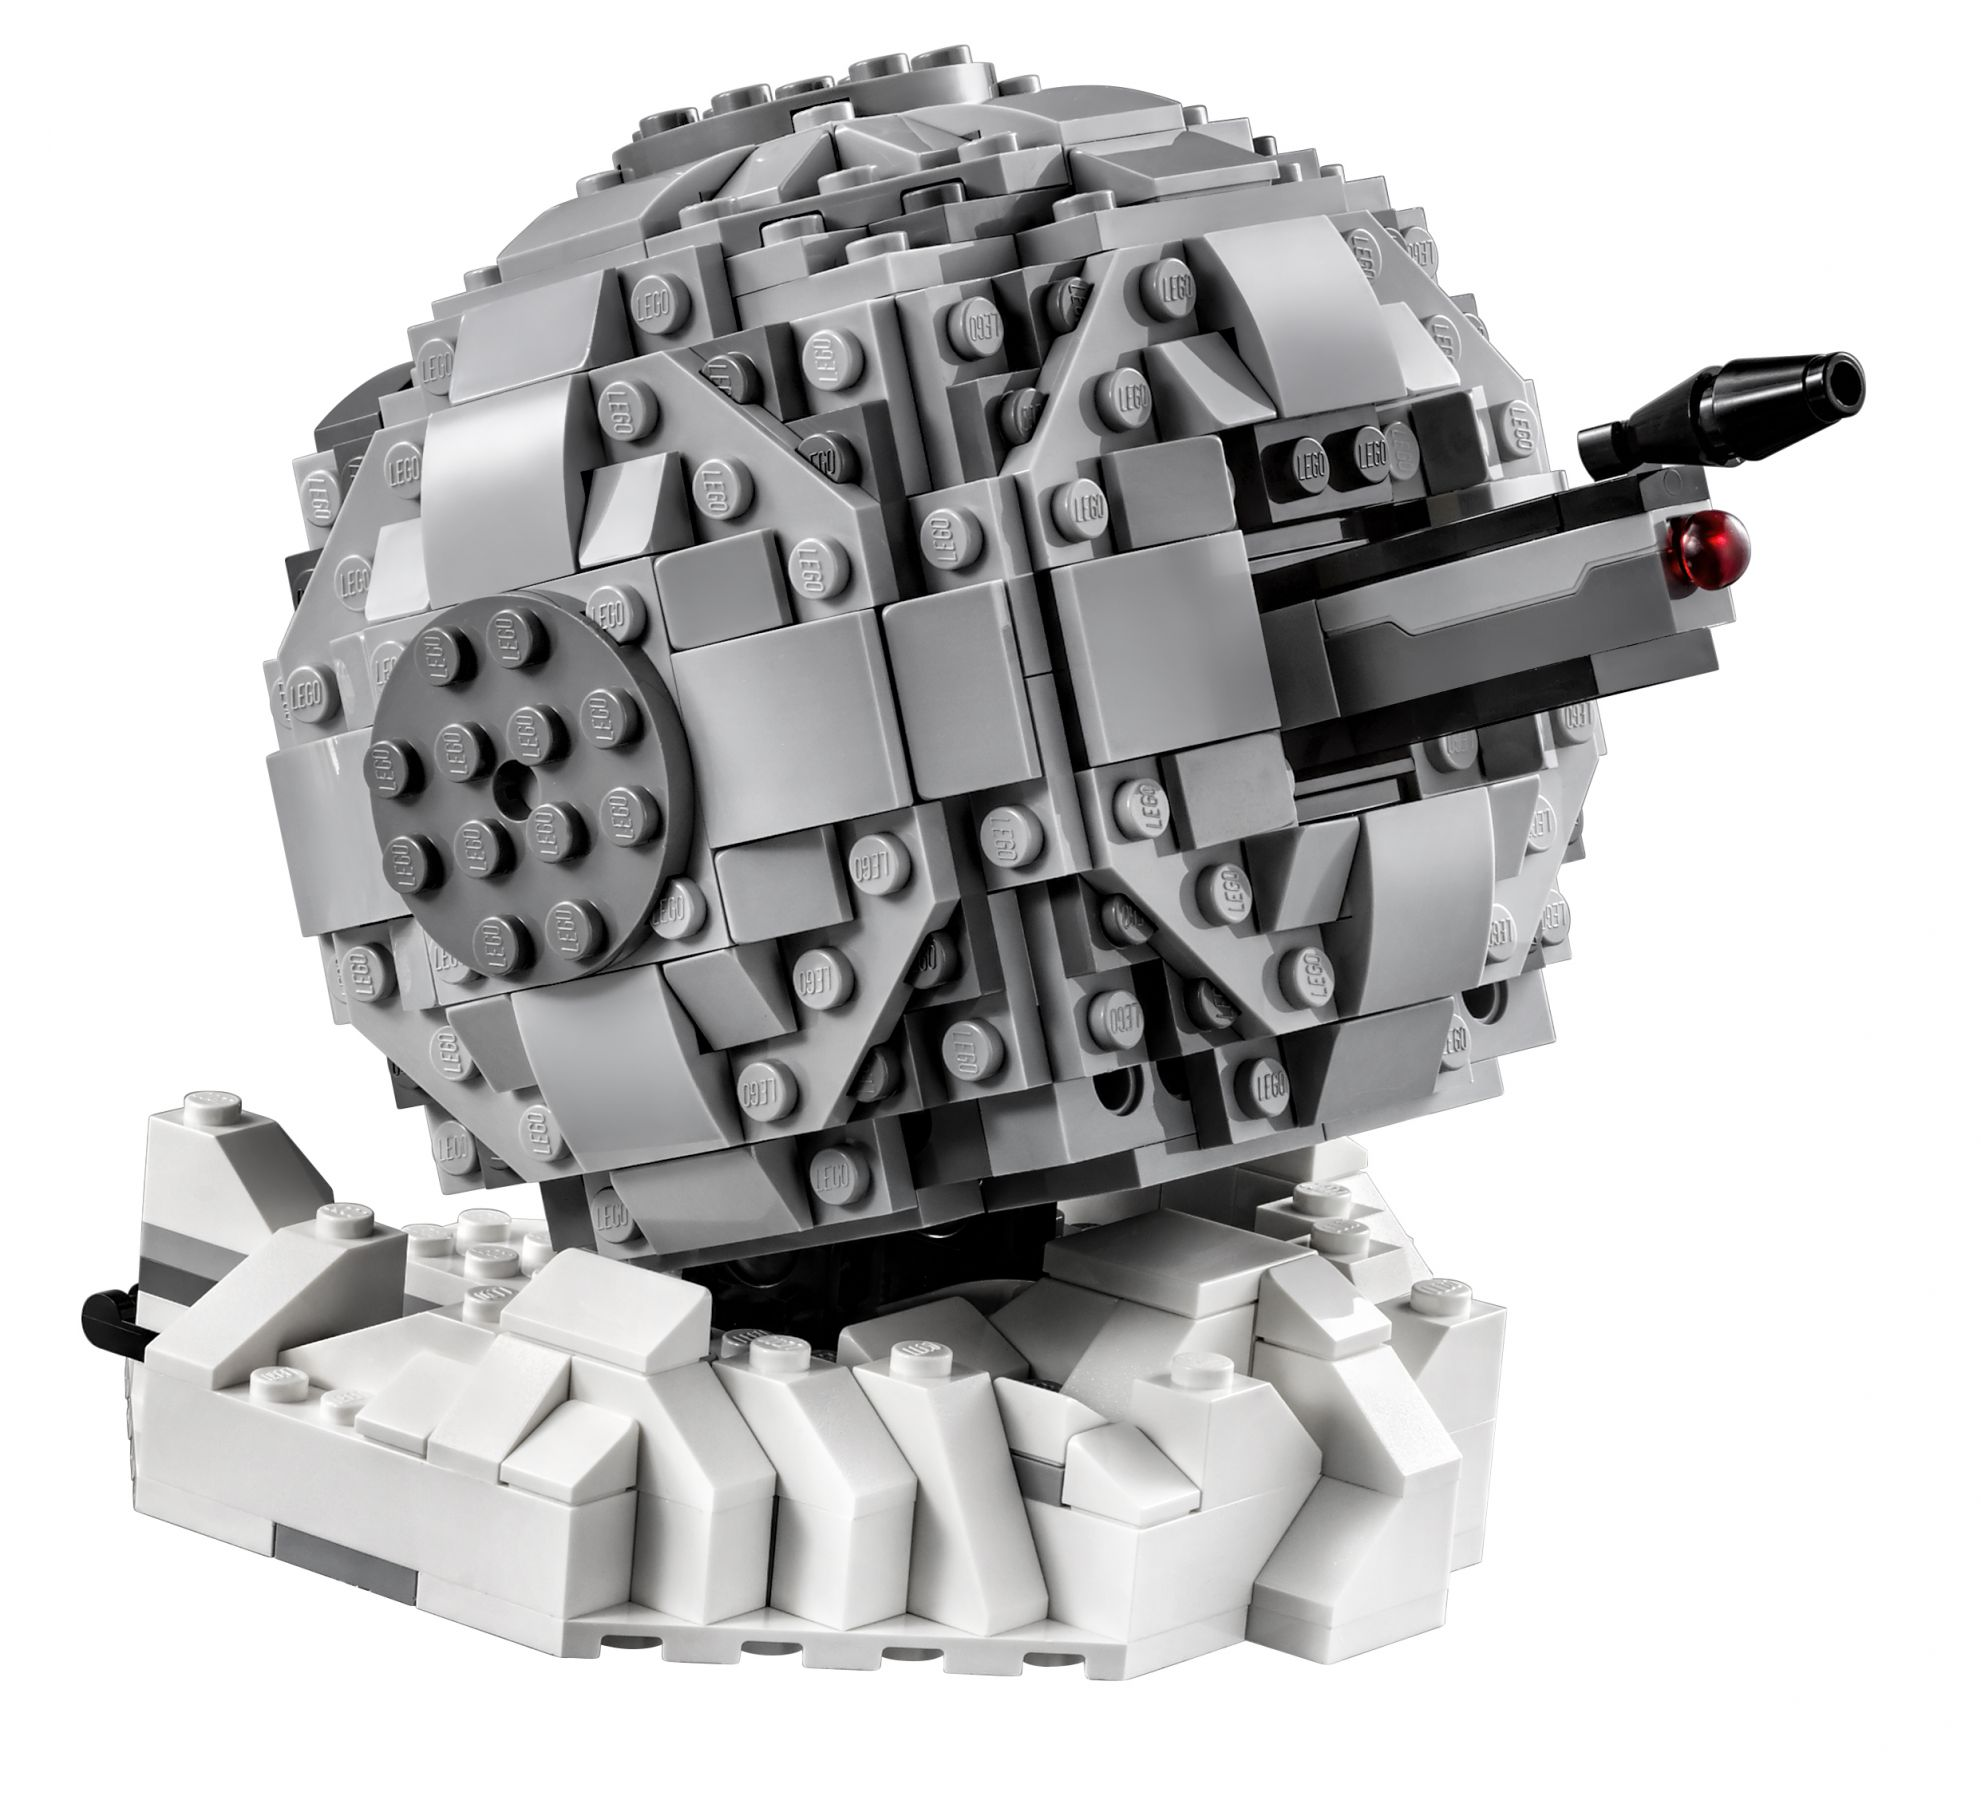 LEGO Star Wars 75098 Angriff auf Hoth™ LEGO-75098-Assault-on-Hoth-Front_007.jpg